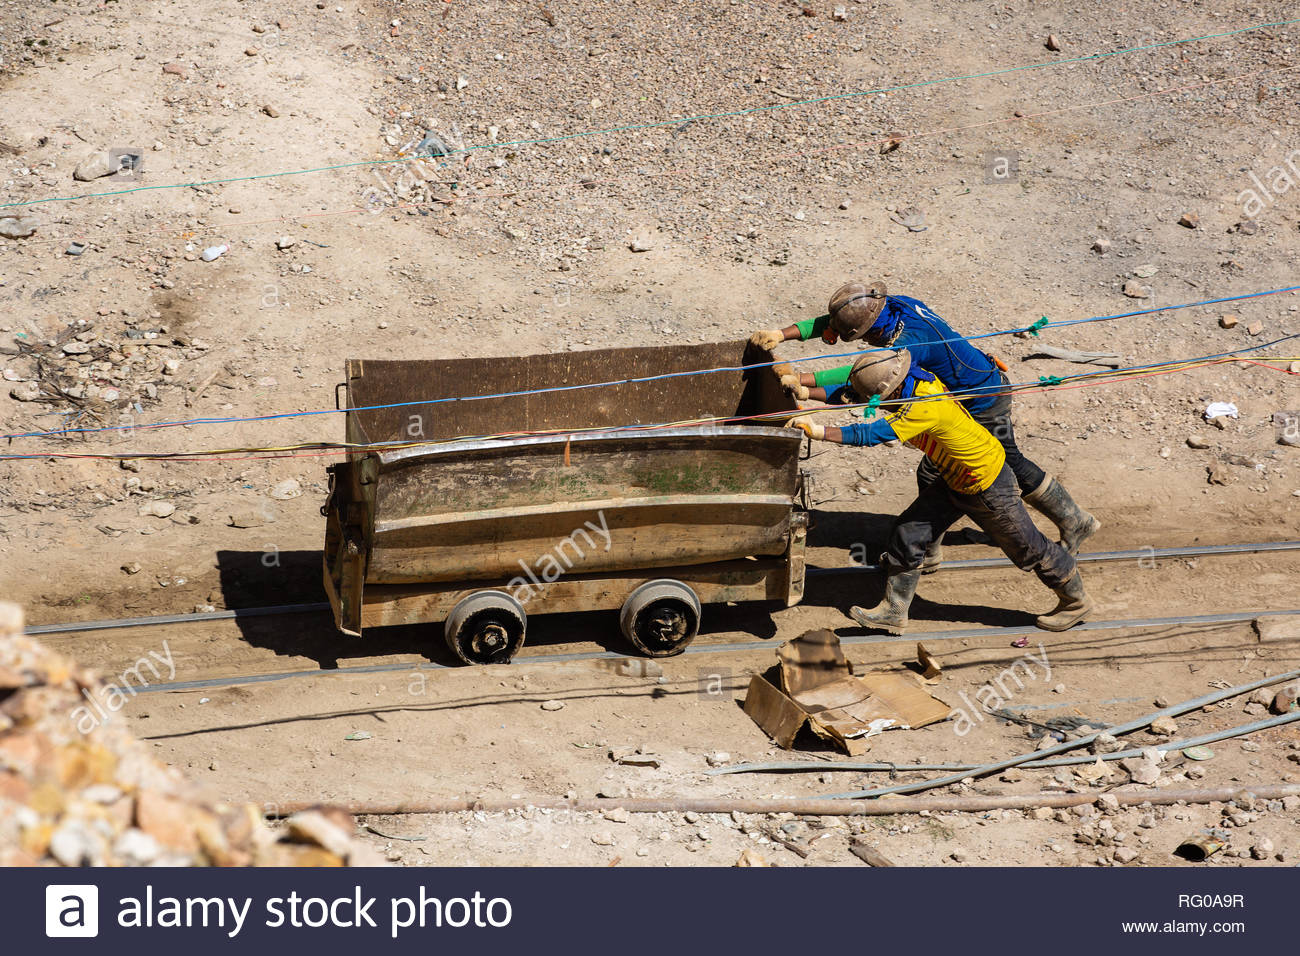 Miners at work at the mineral mines of the Cerro Rico mountain in Potosí, Bolivia - Stock Image